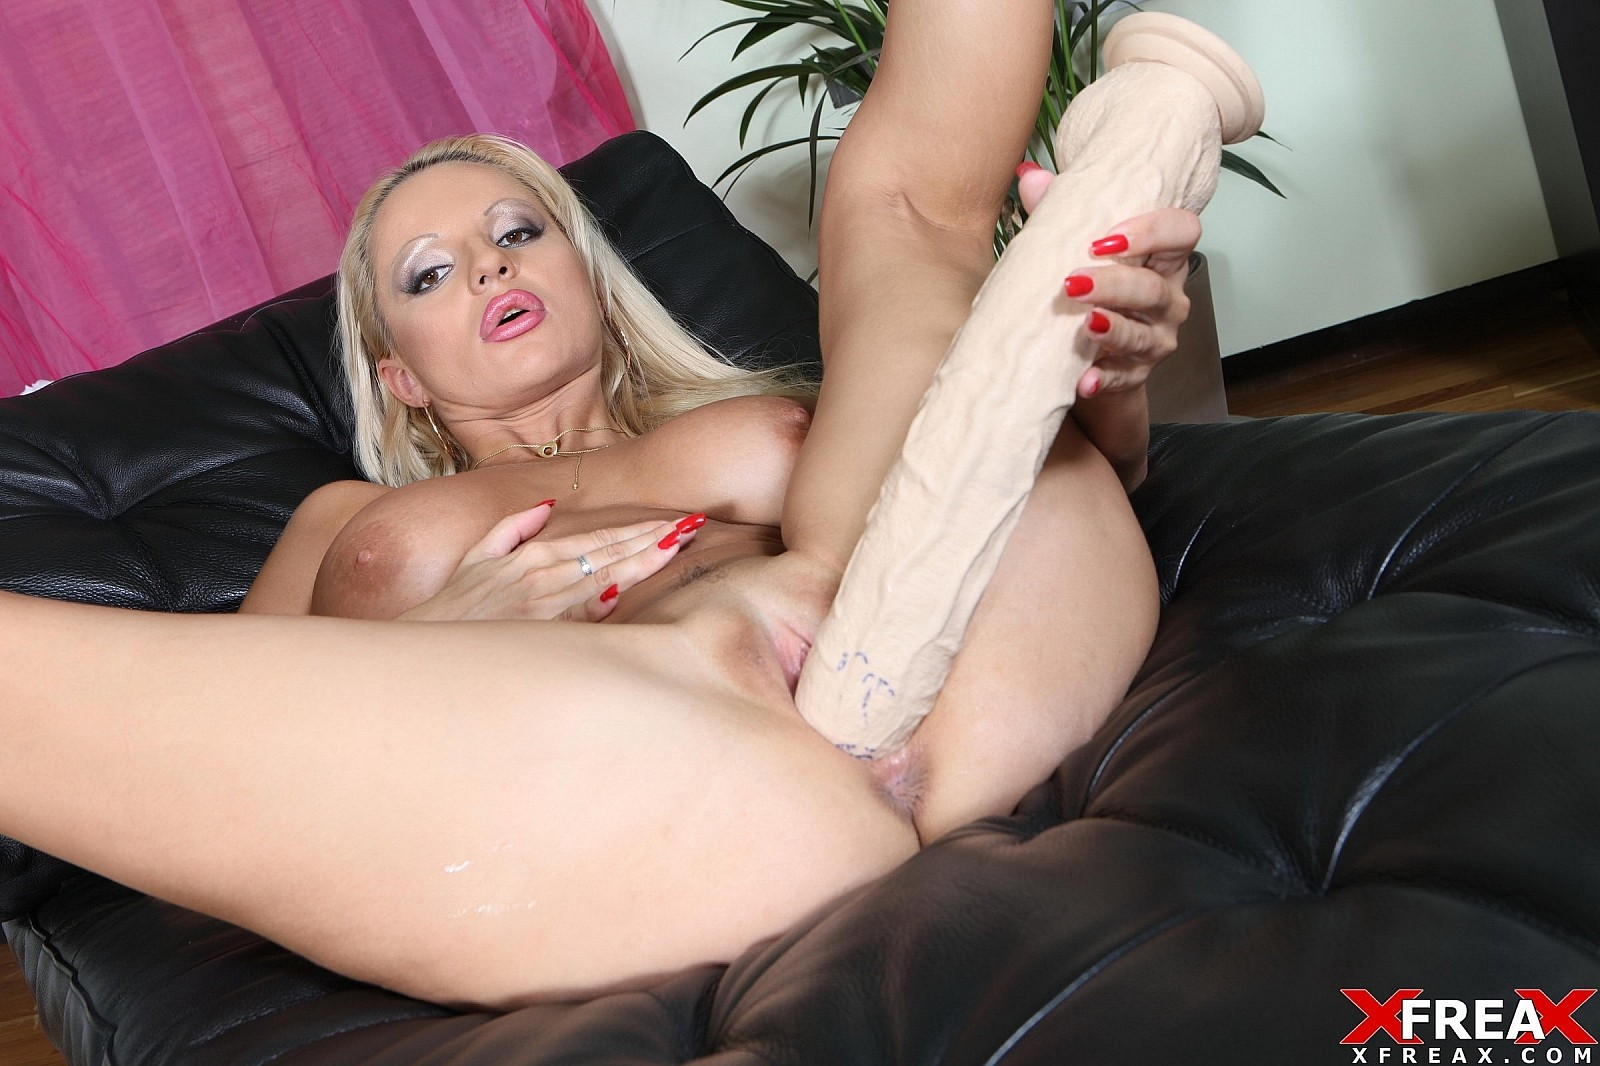 Download [DildoAndFisting] Busty Blond with Big Toys